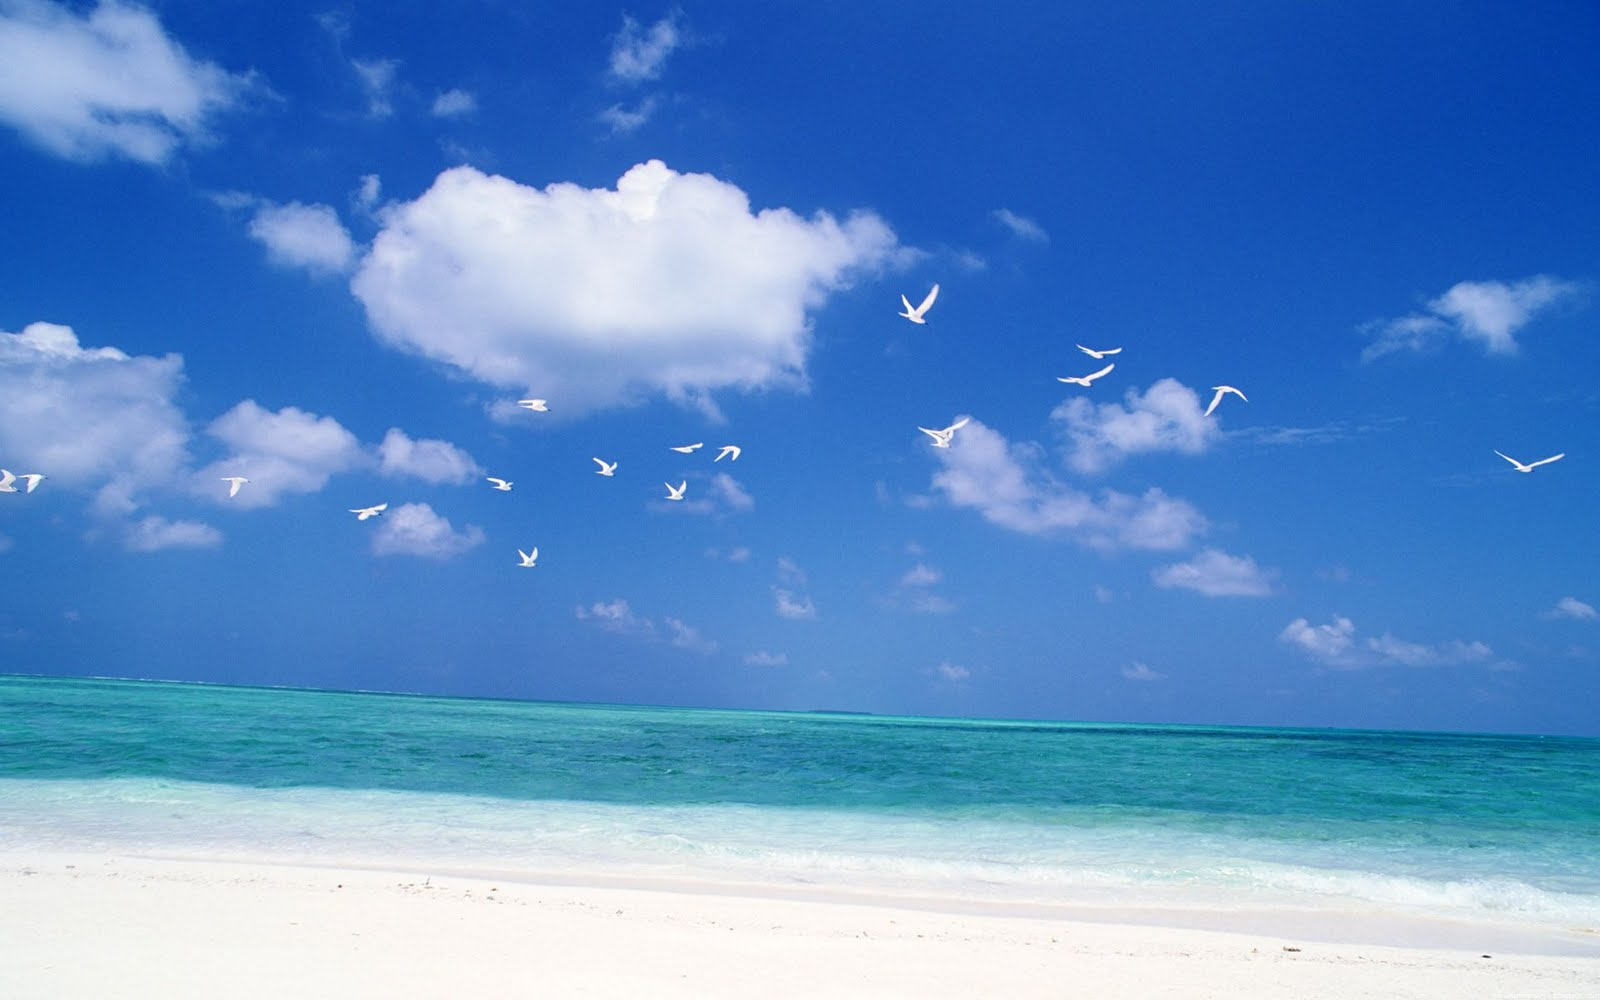 Sky Wallpapers: Wallpapers Free HD: Sea And Sky